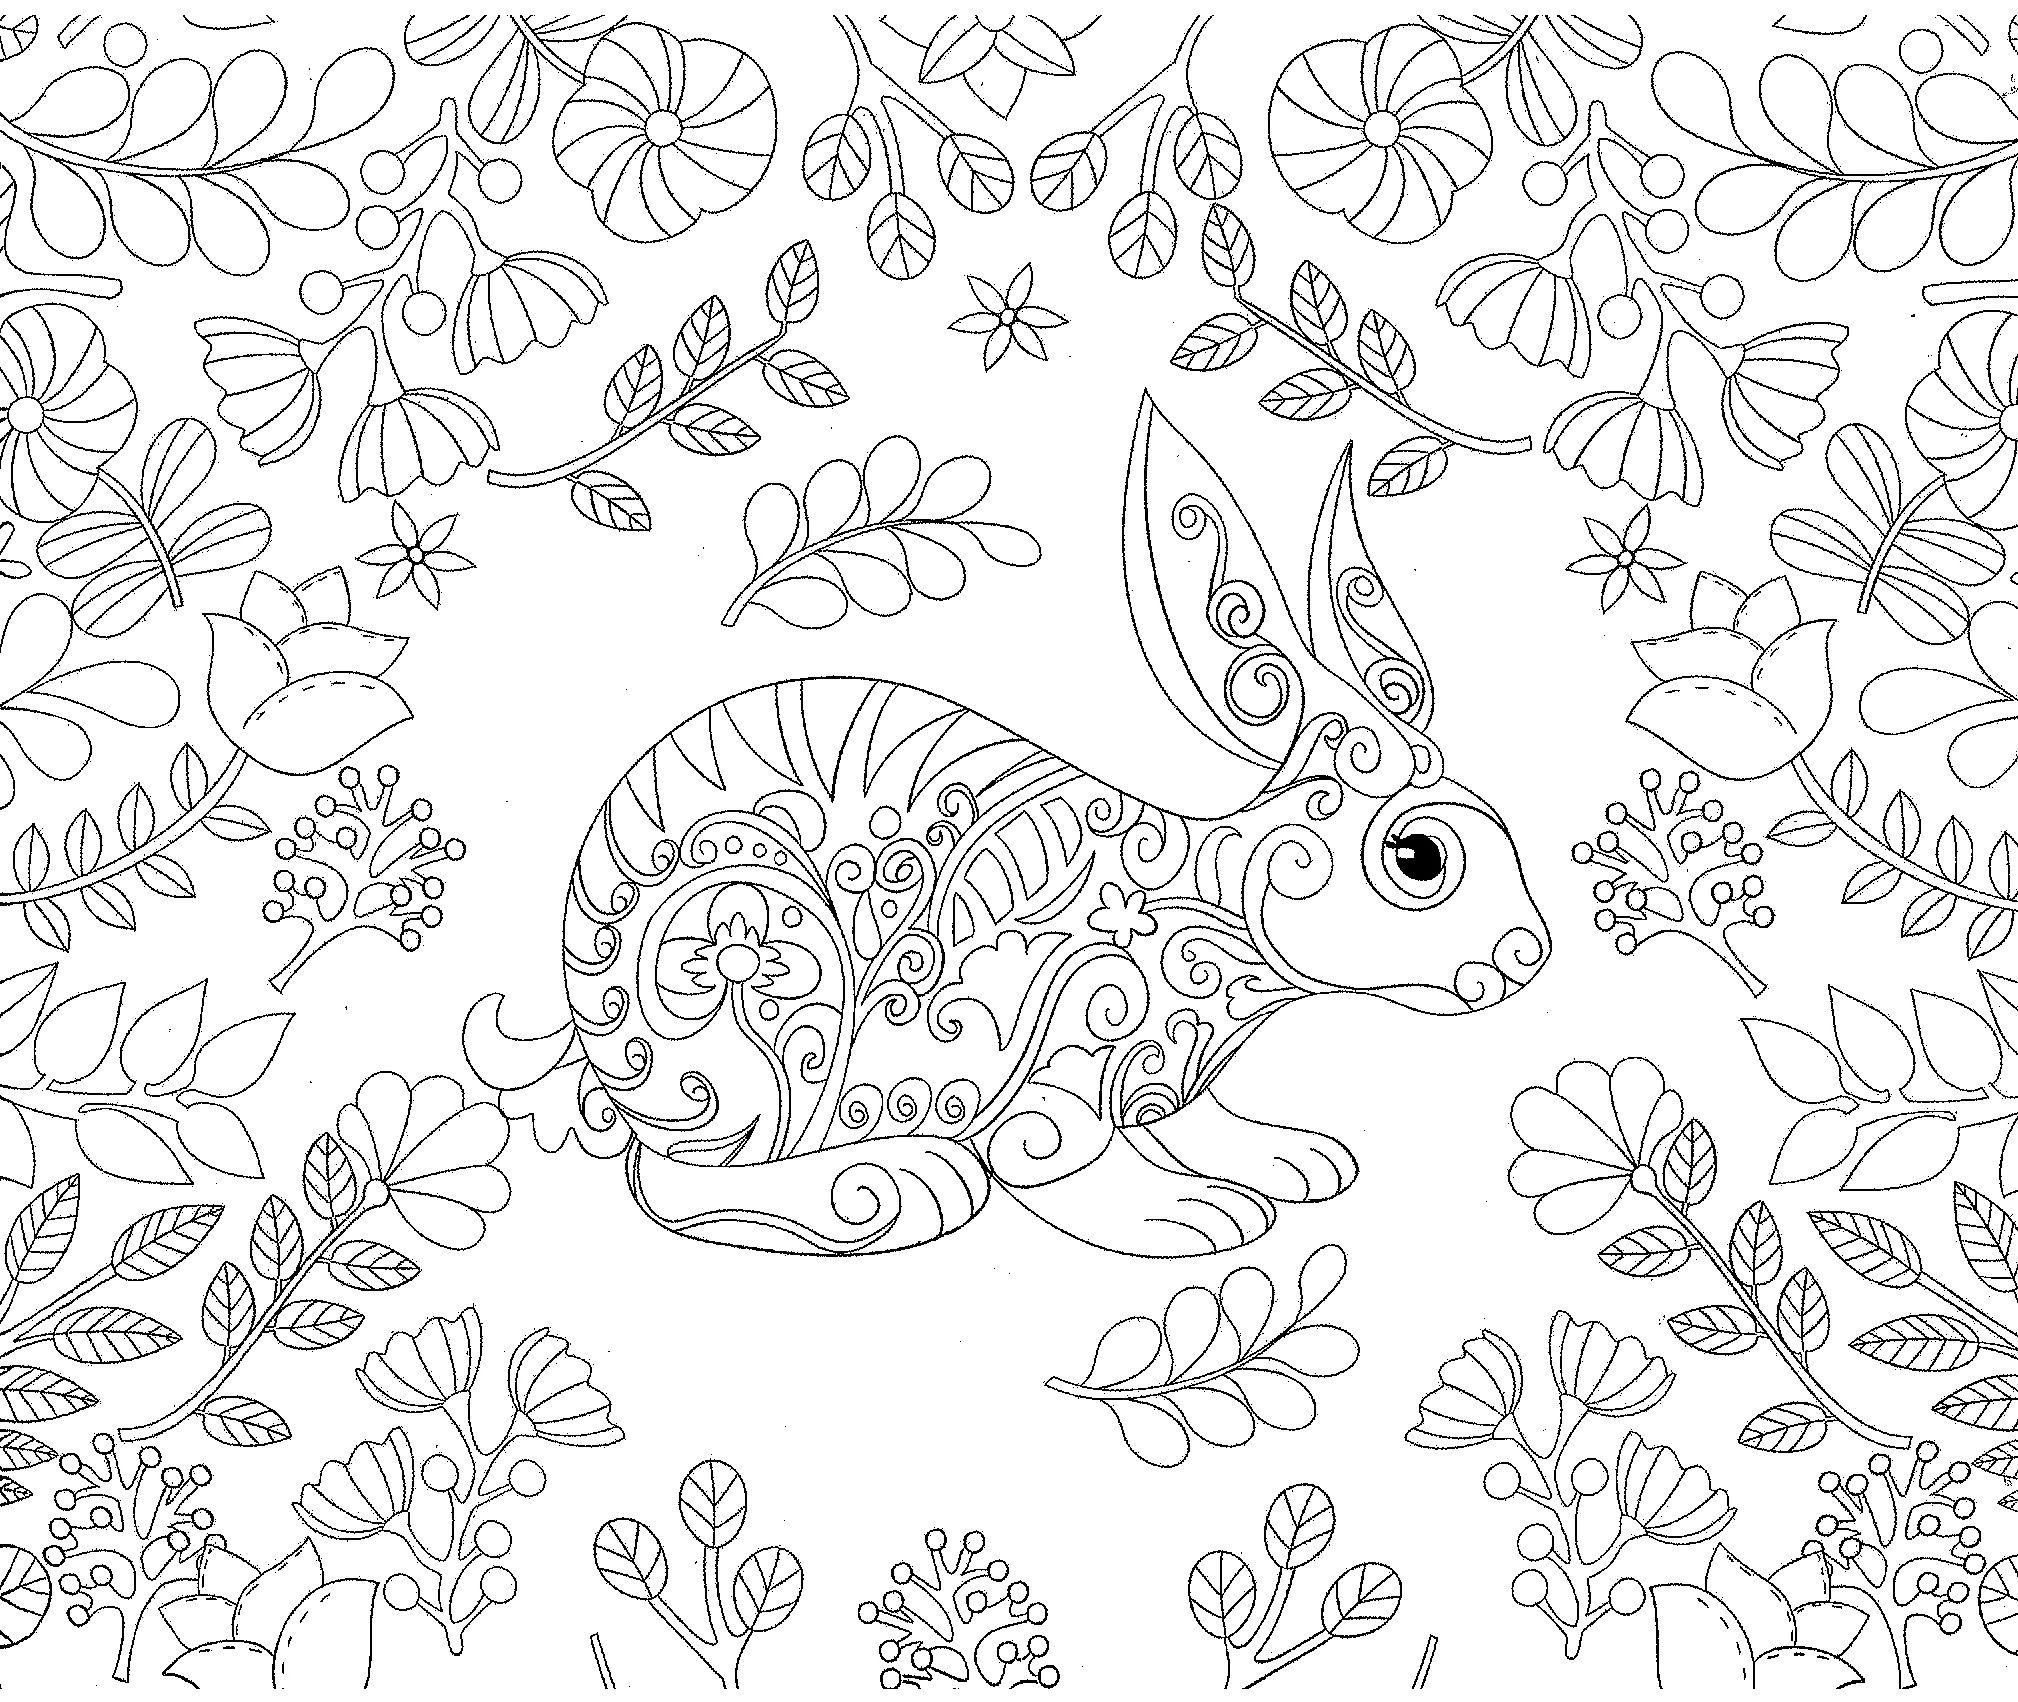 Rabbit Bunny Forest Coloring Adult Coloriage Colorir With Images